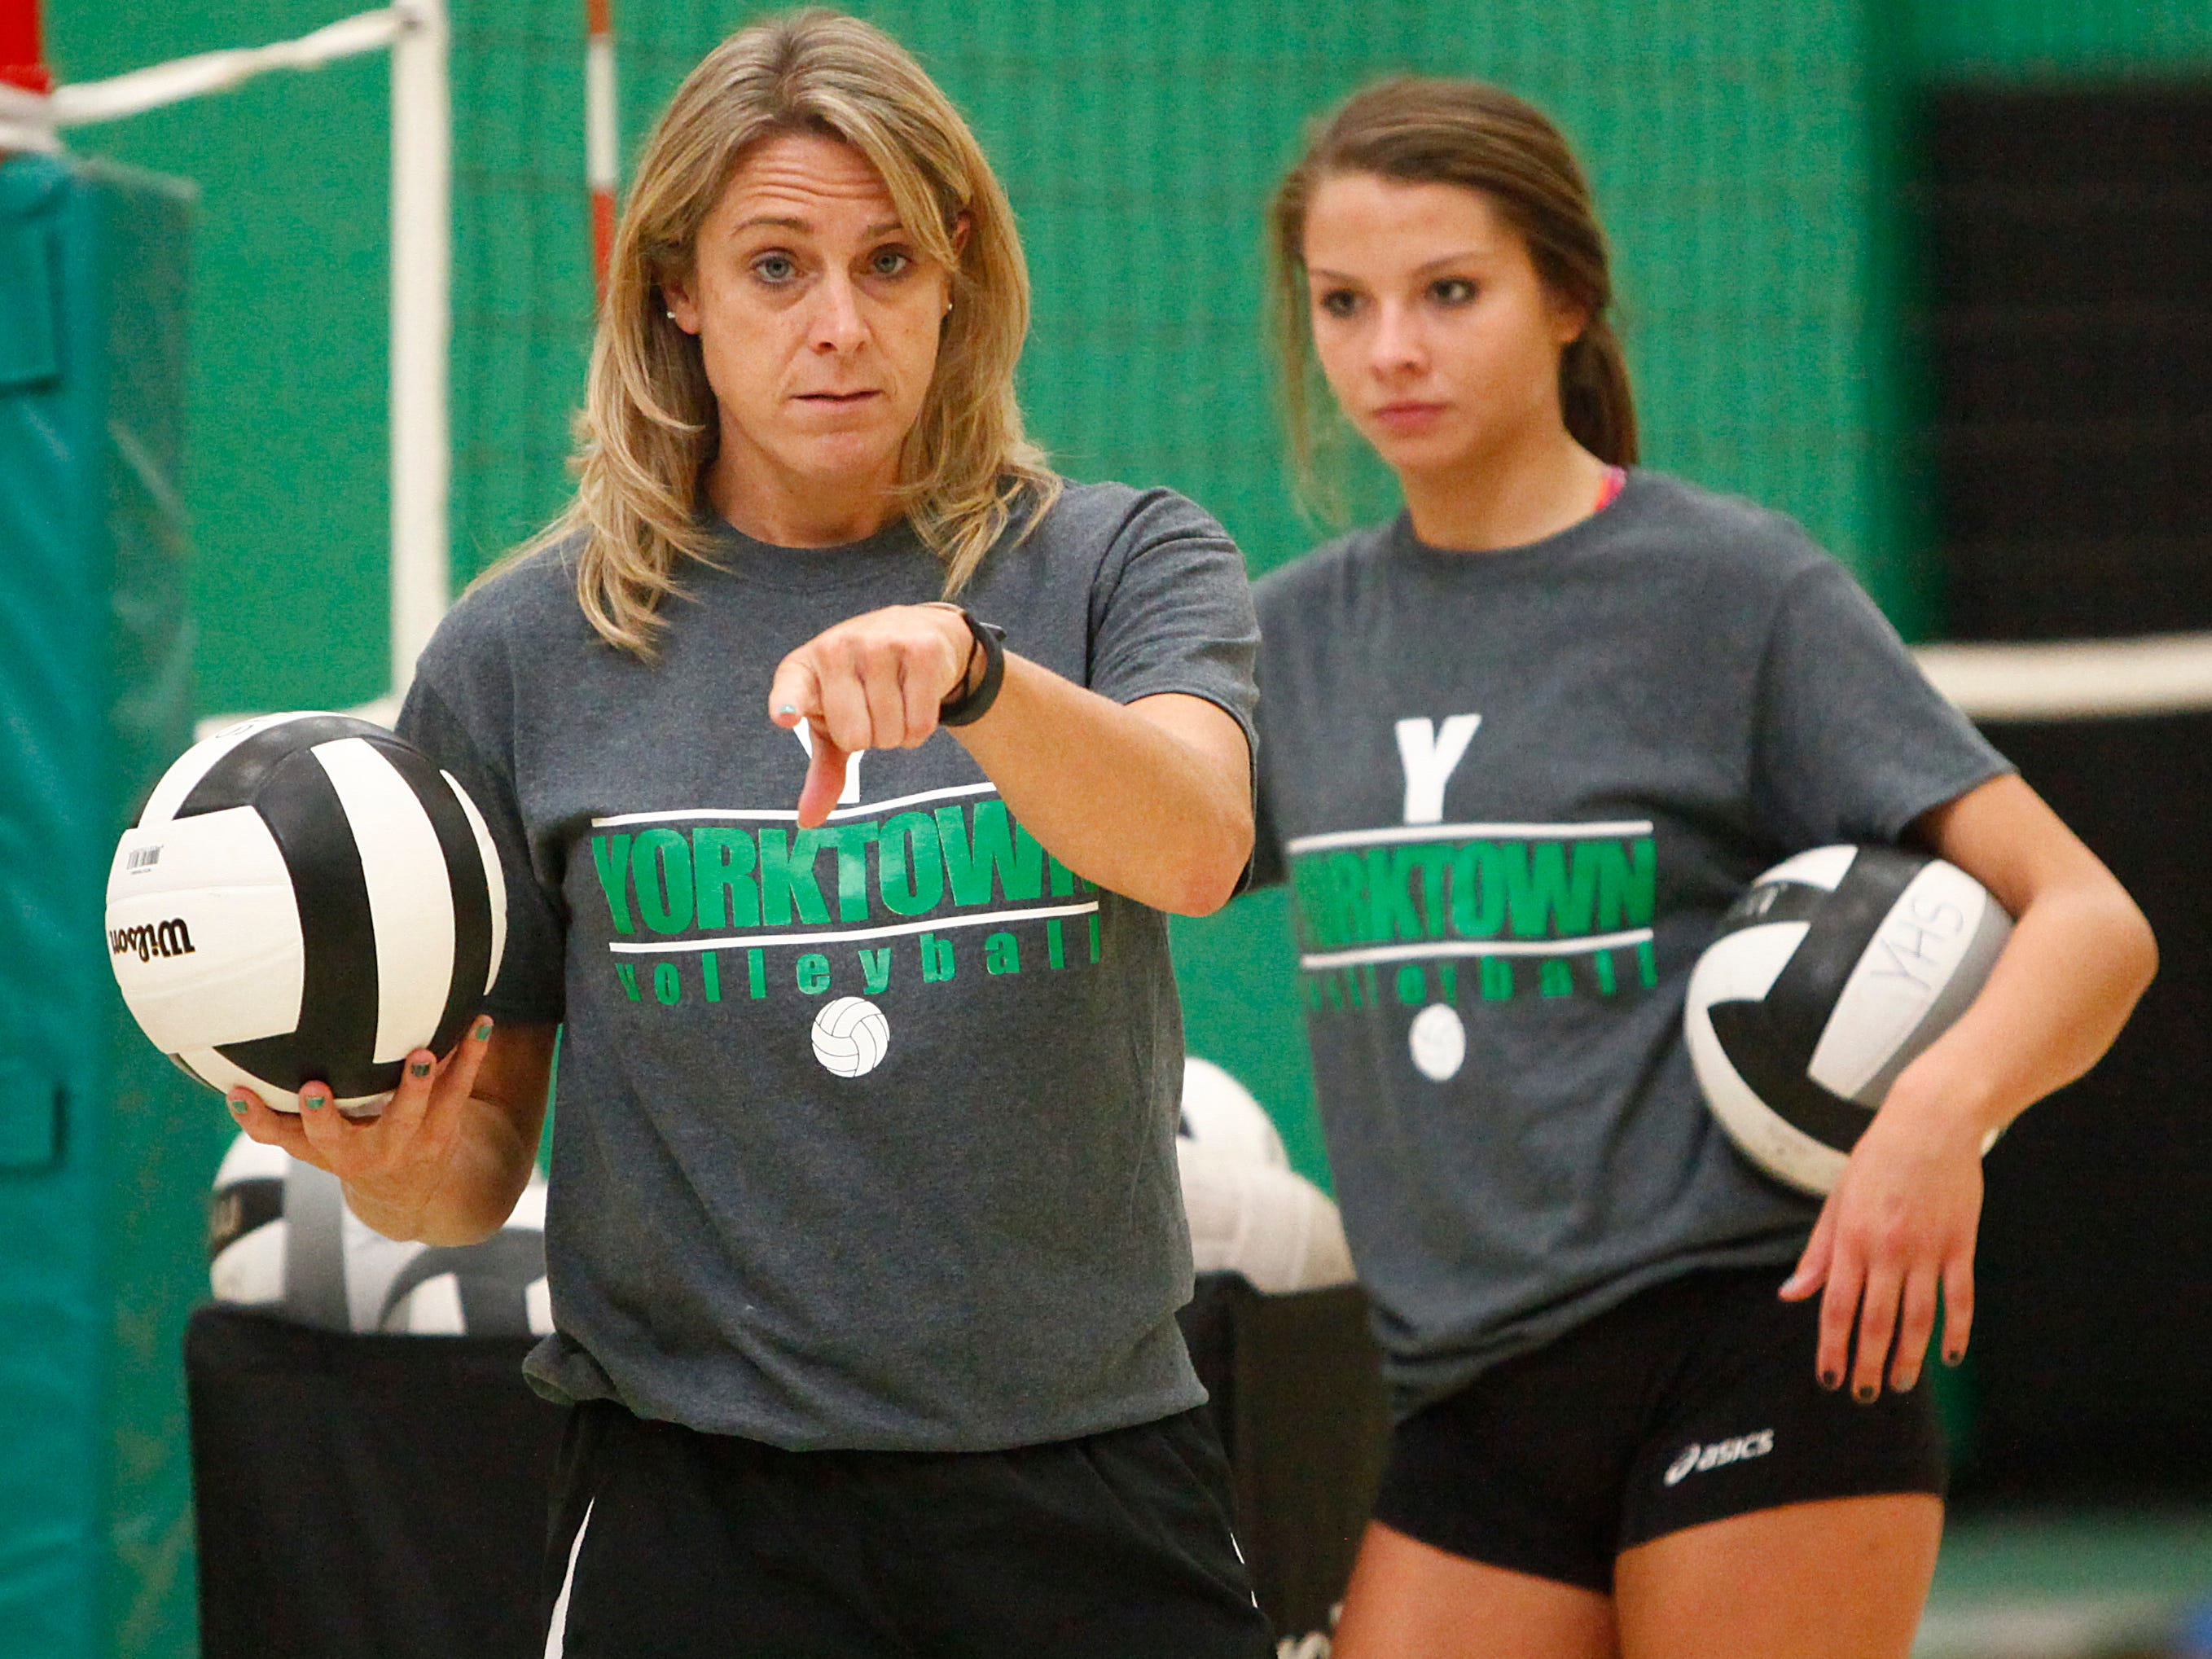 Yorktown's interim coach Rhonda Murr helps run the drills with some of her players during a practice on Wednesday. Yorktown will play Central on Thursday.